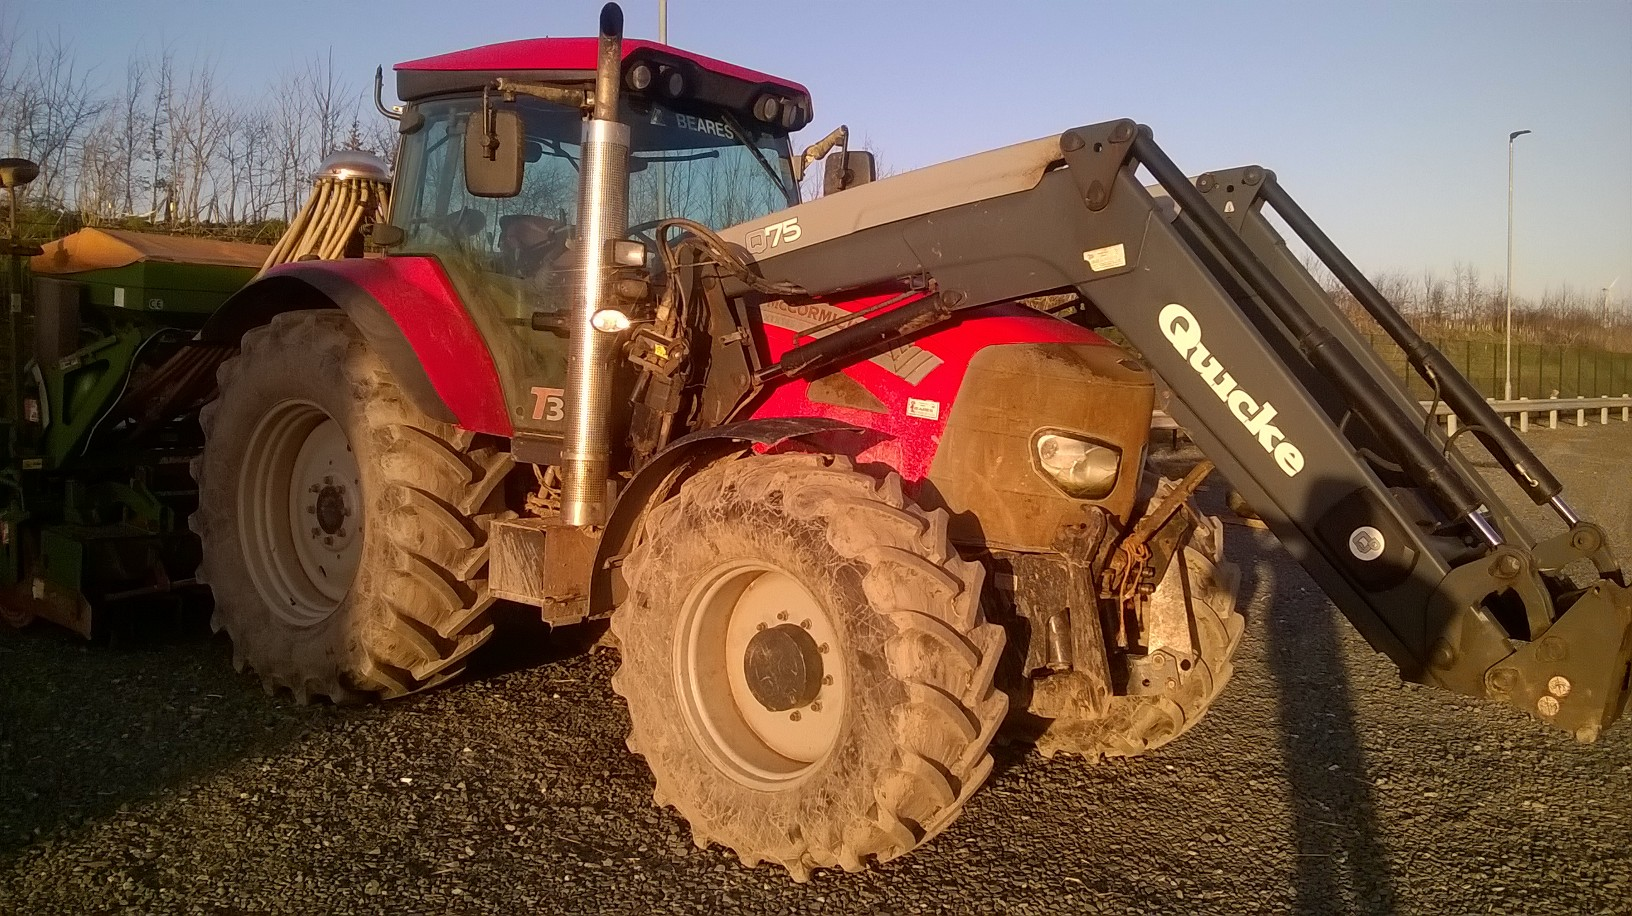 McCormick tractor with loader